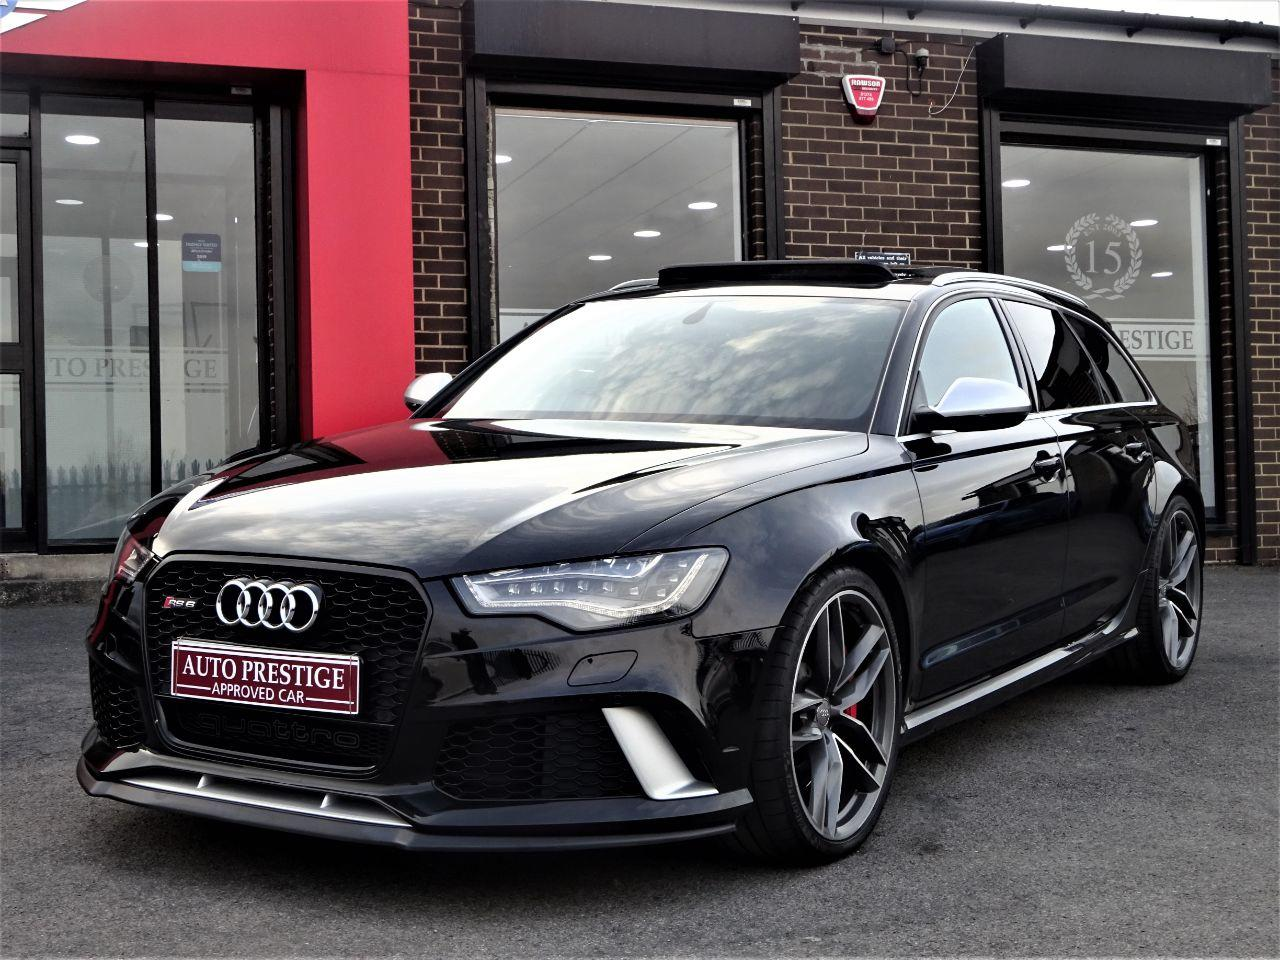 Audi RS6 4.0 Bi-Turbo Quattro 5dr Tip Auto 64 REG DYNAMIC PACK PAN ROOF MILTEKS Estate Petrol Black at Autoprestige Bradford